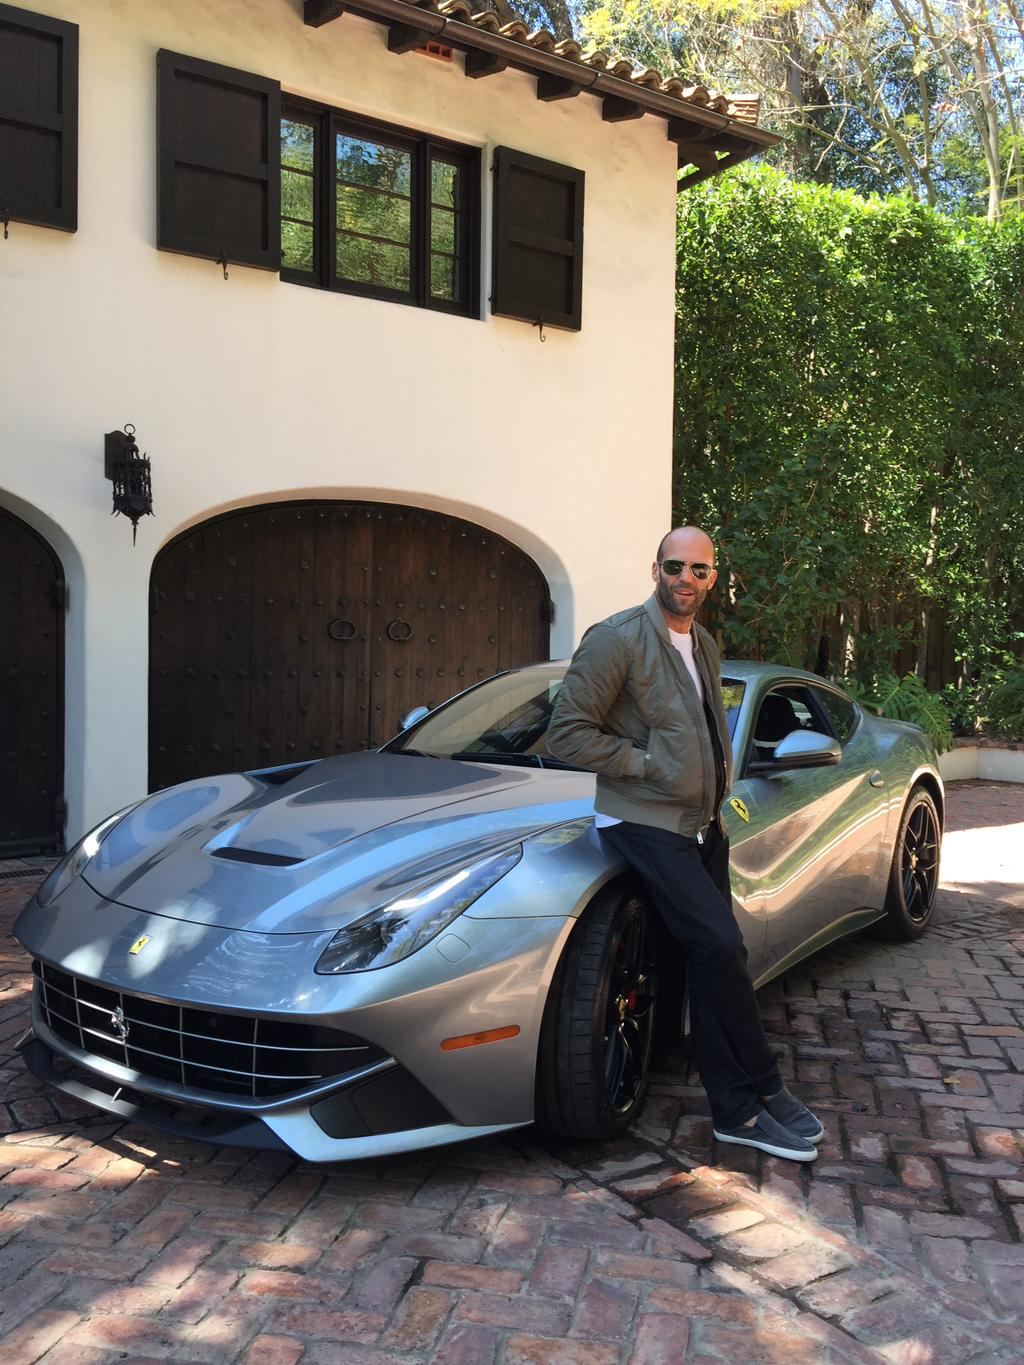 Top Notch Auto >> Jason Statham's Daily Driver Is a Ferrari F12berlinetta: Too Good for an F-Type - autoevolution